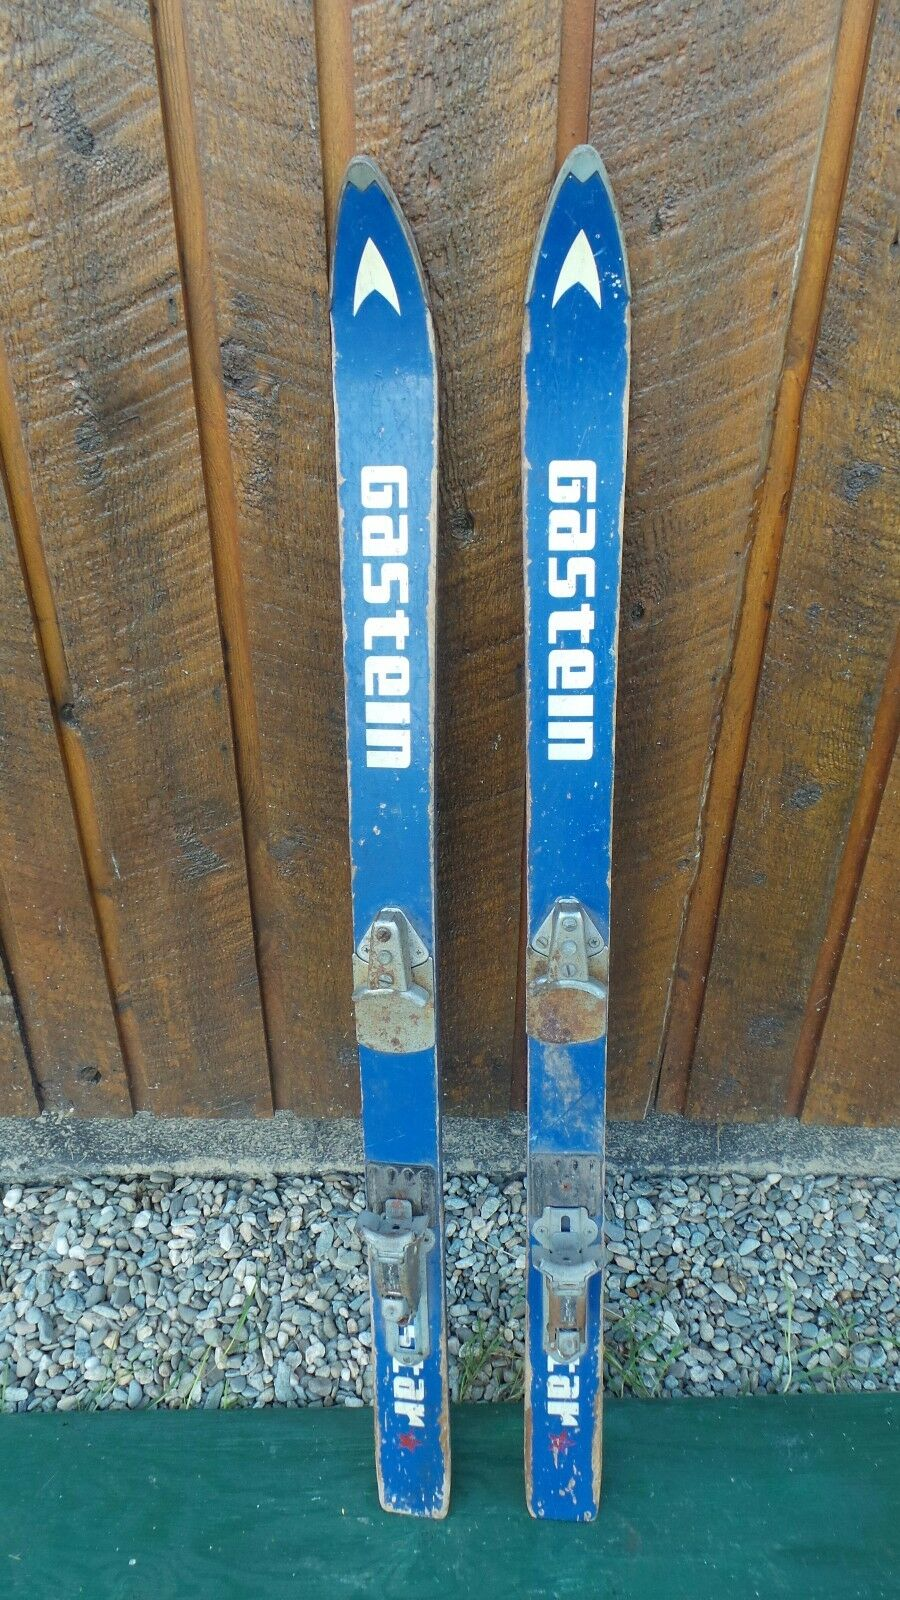 VINTAGE Wooden 52  Skis bluee and White  Finish with Metal Bindings Signed GASTEIN  authentic